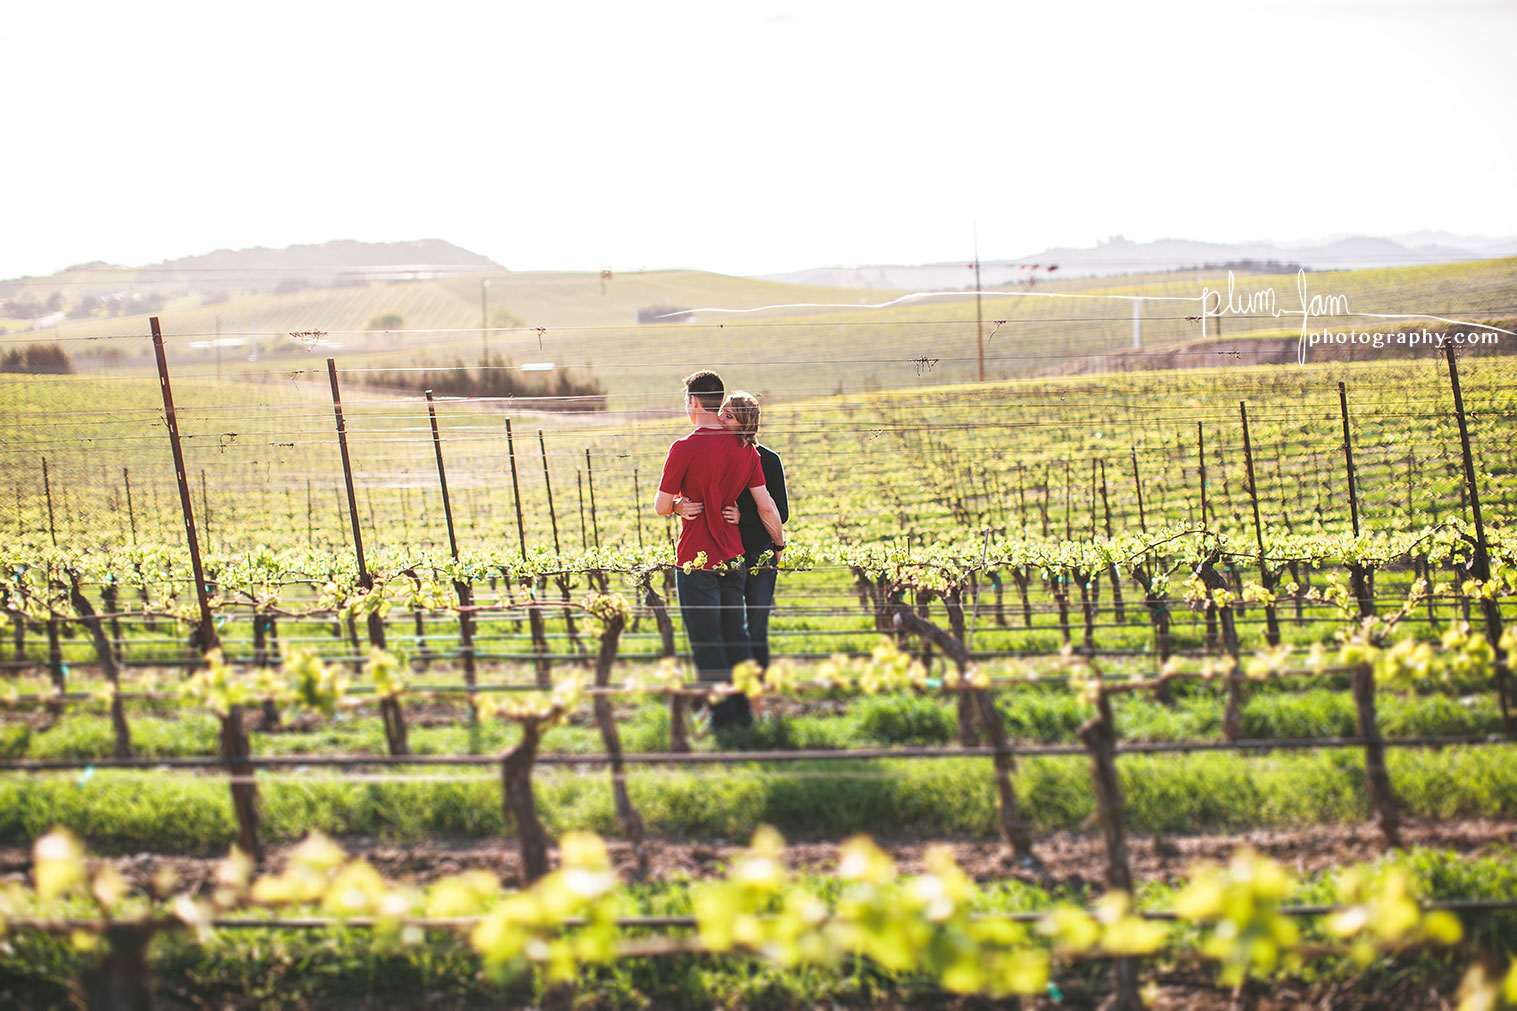 RebeccaMike-Engagement-vineyard-shellbeach-california-plumjamphotography-06